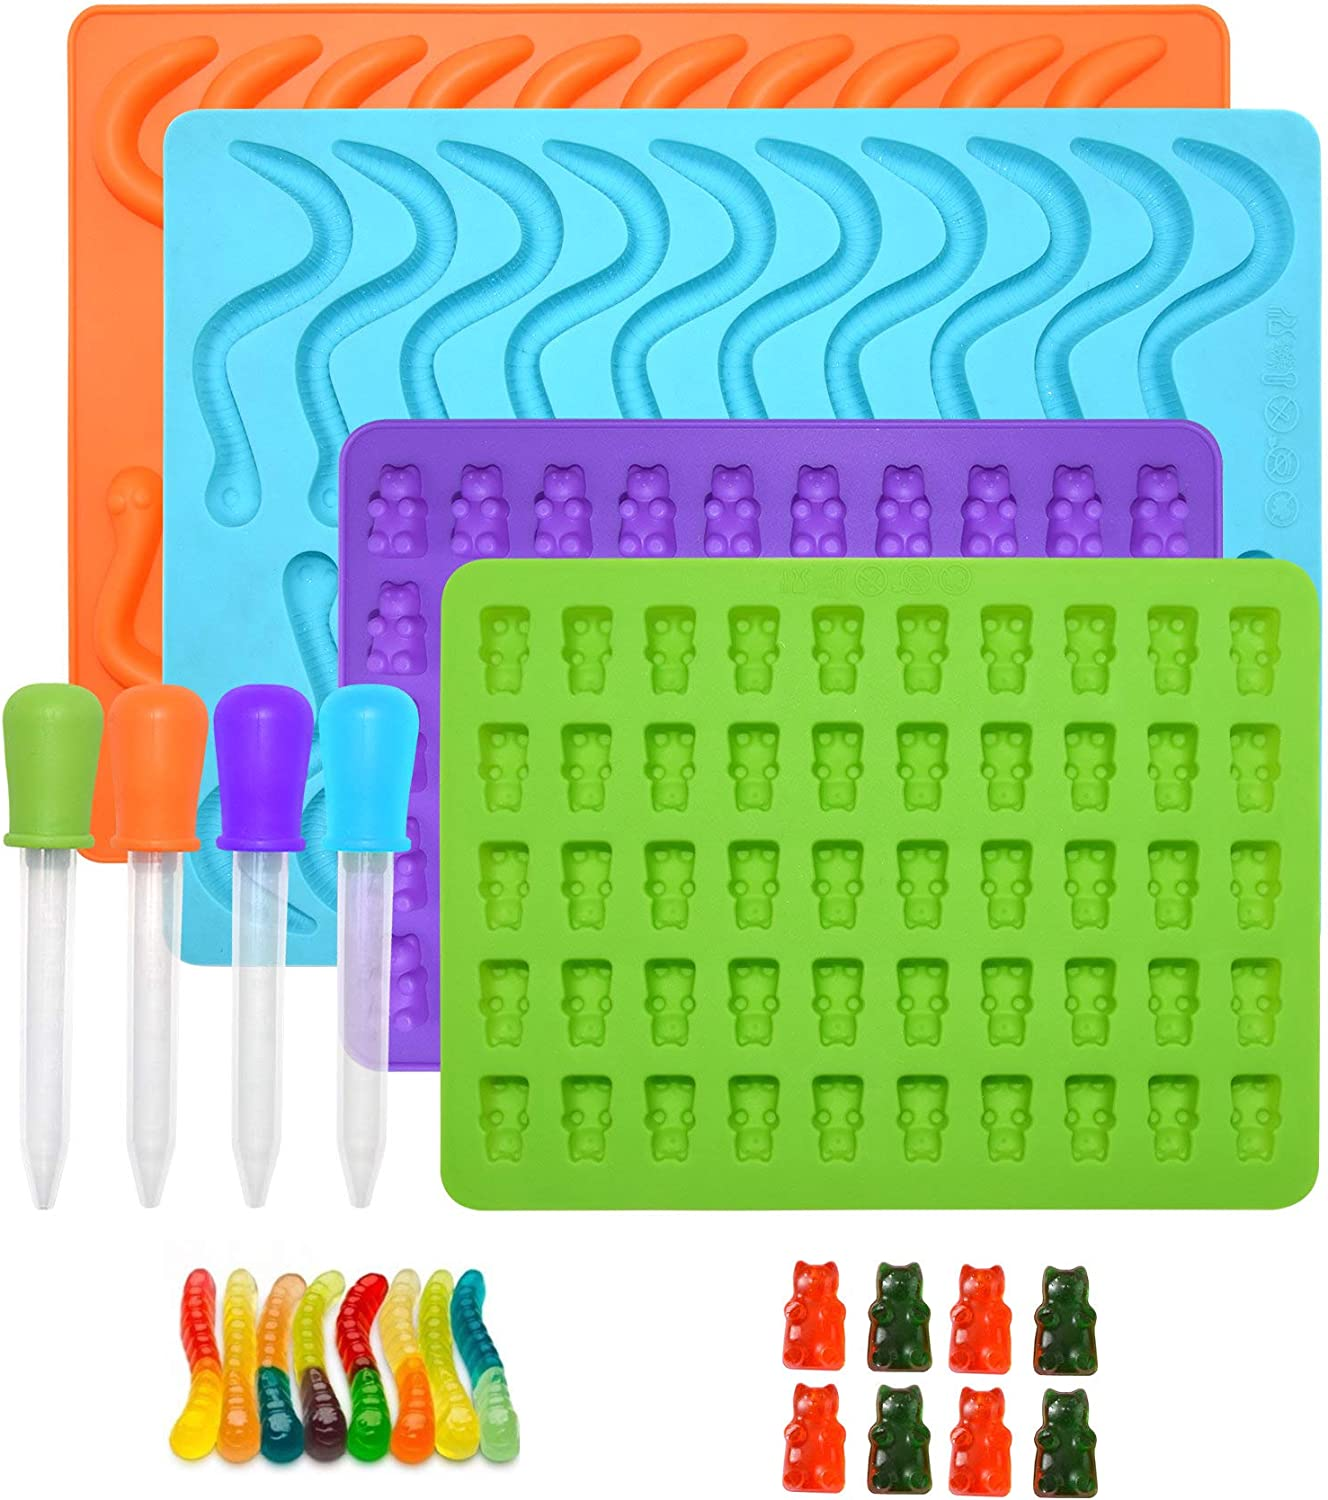 Gummy Worm & Gummy Bear 4pcs Silicone Candy Molds / 4 Droppers ~Set of 8 Lot Teddy Bear & Worm Shaped Food Grade for making Gummy Candy Chocolate Ice Cube Frozen treats family Fun Cooking candy making